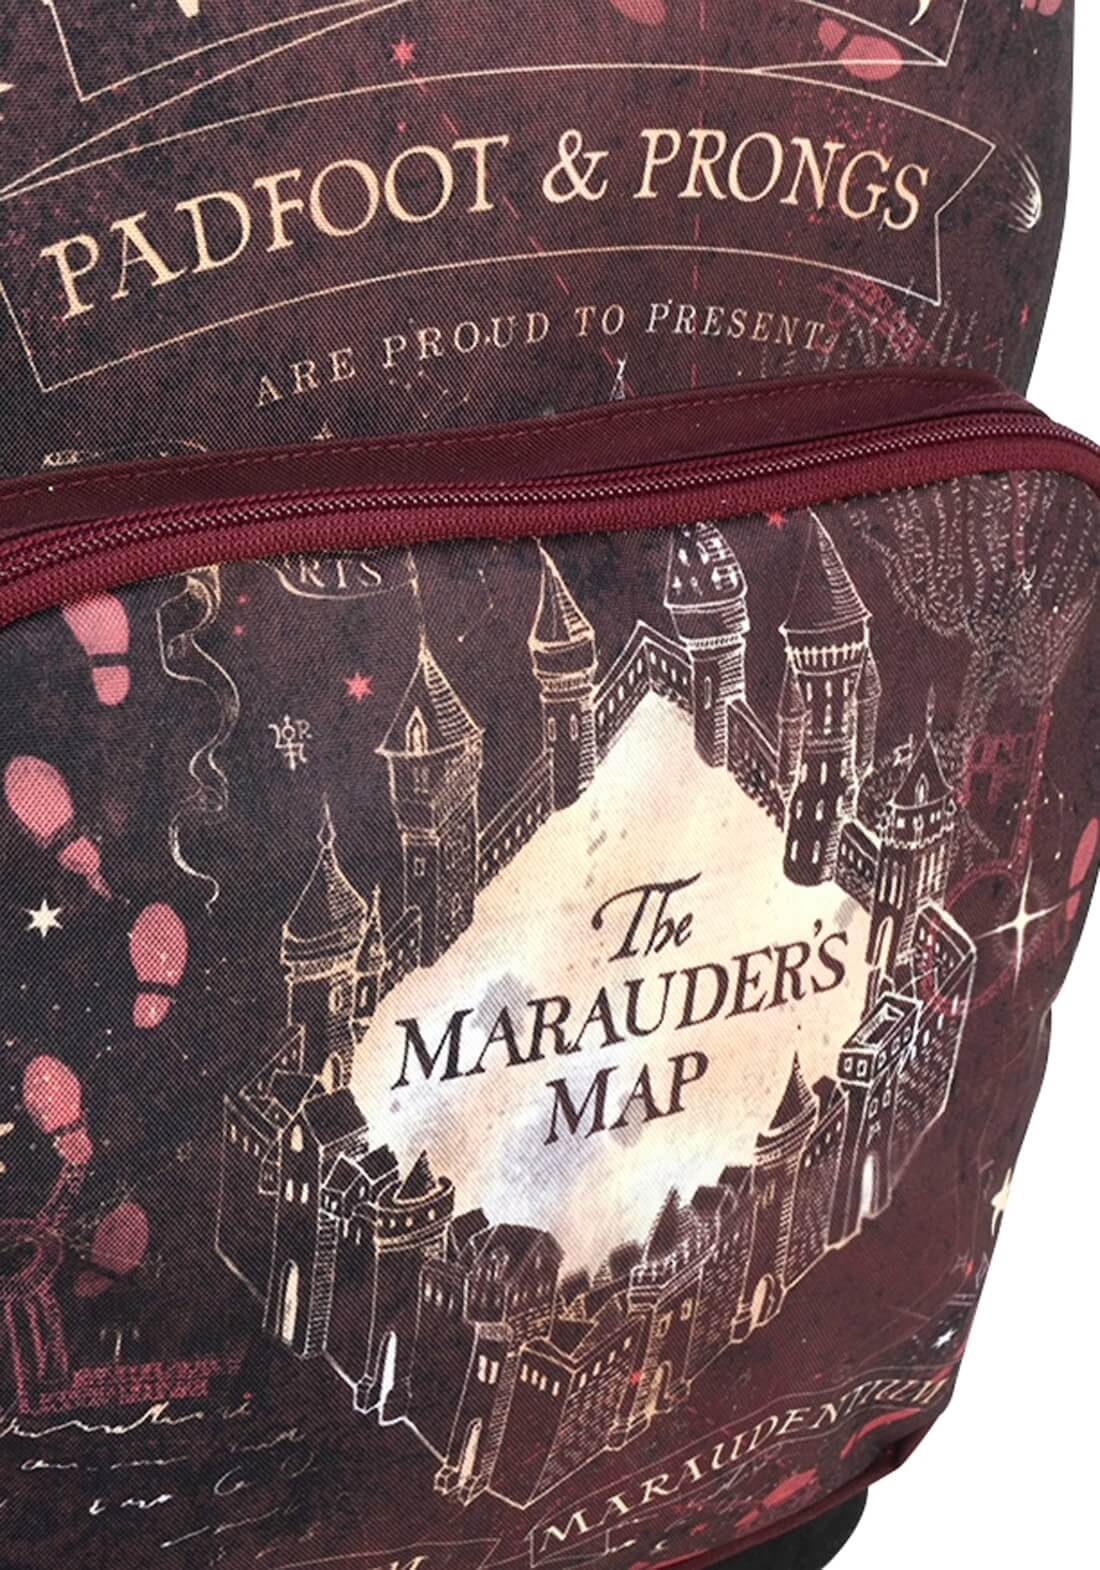 Mochila Harry Potter Mapa do Maroto The Maraude's Map Origin